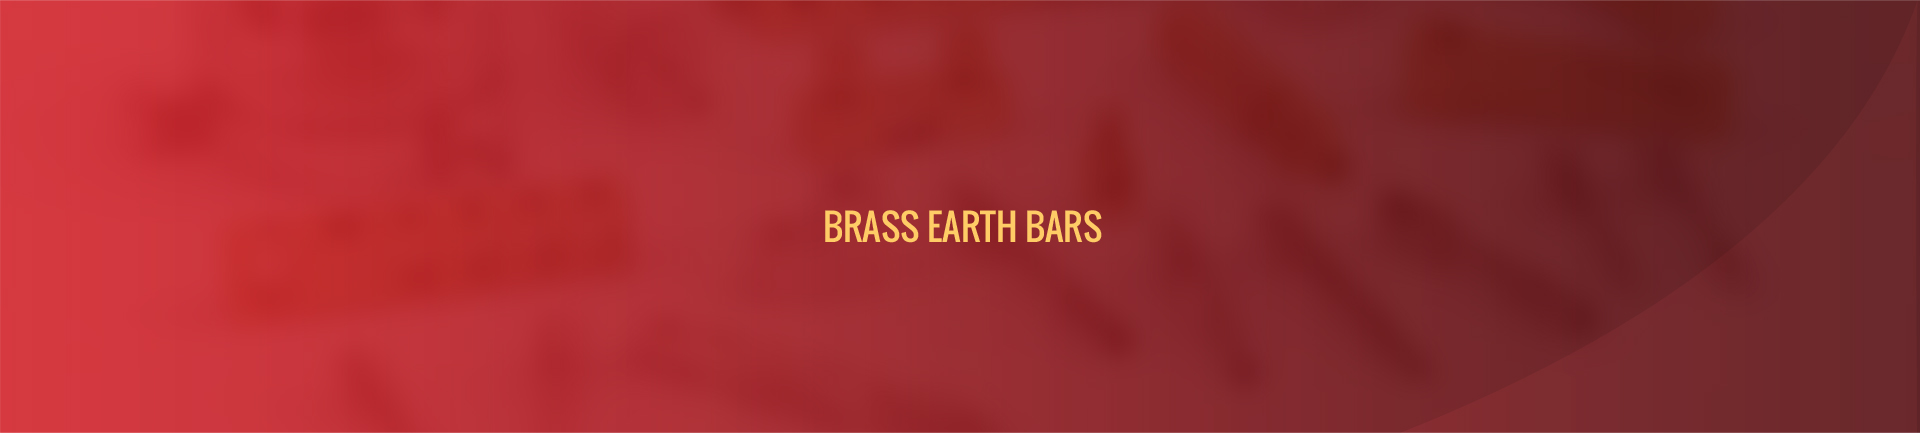 brass-earth-bars-banner